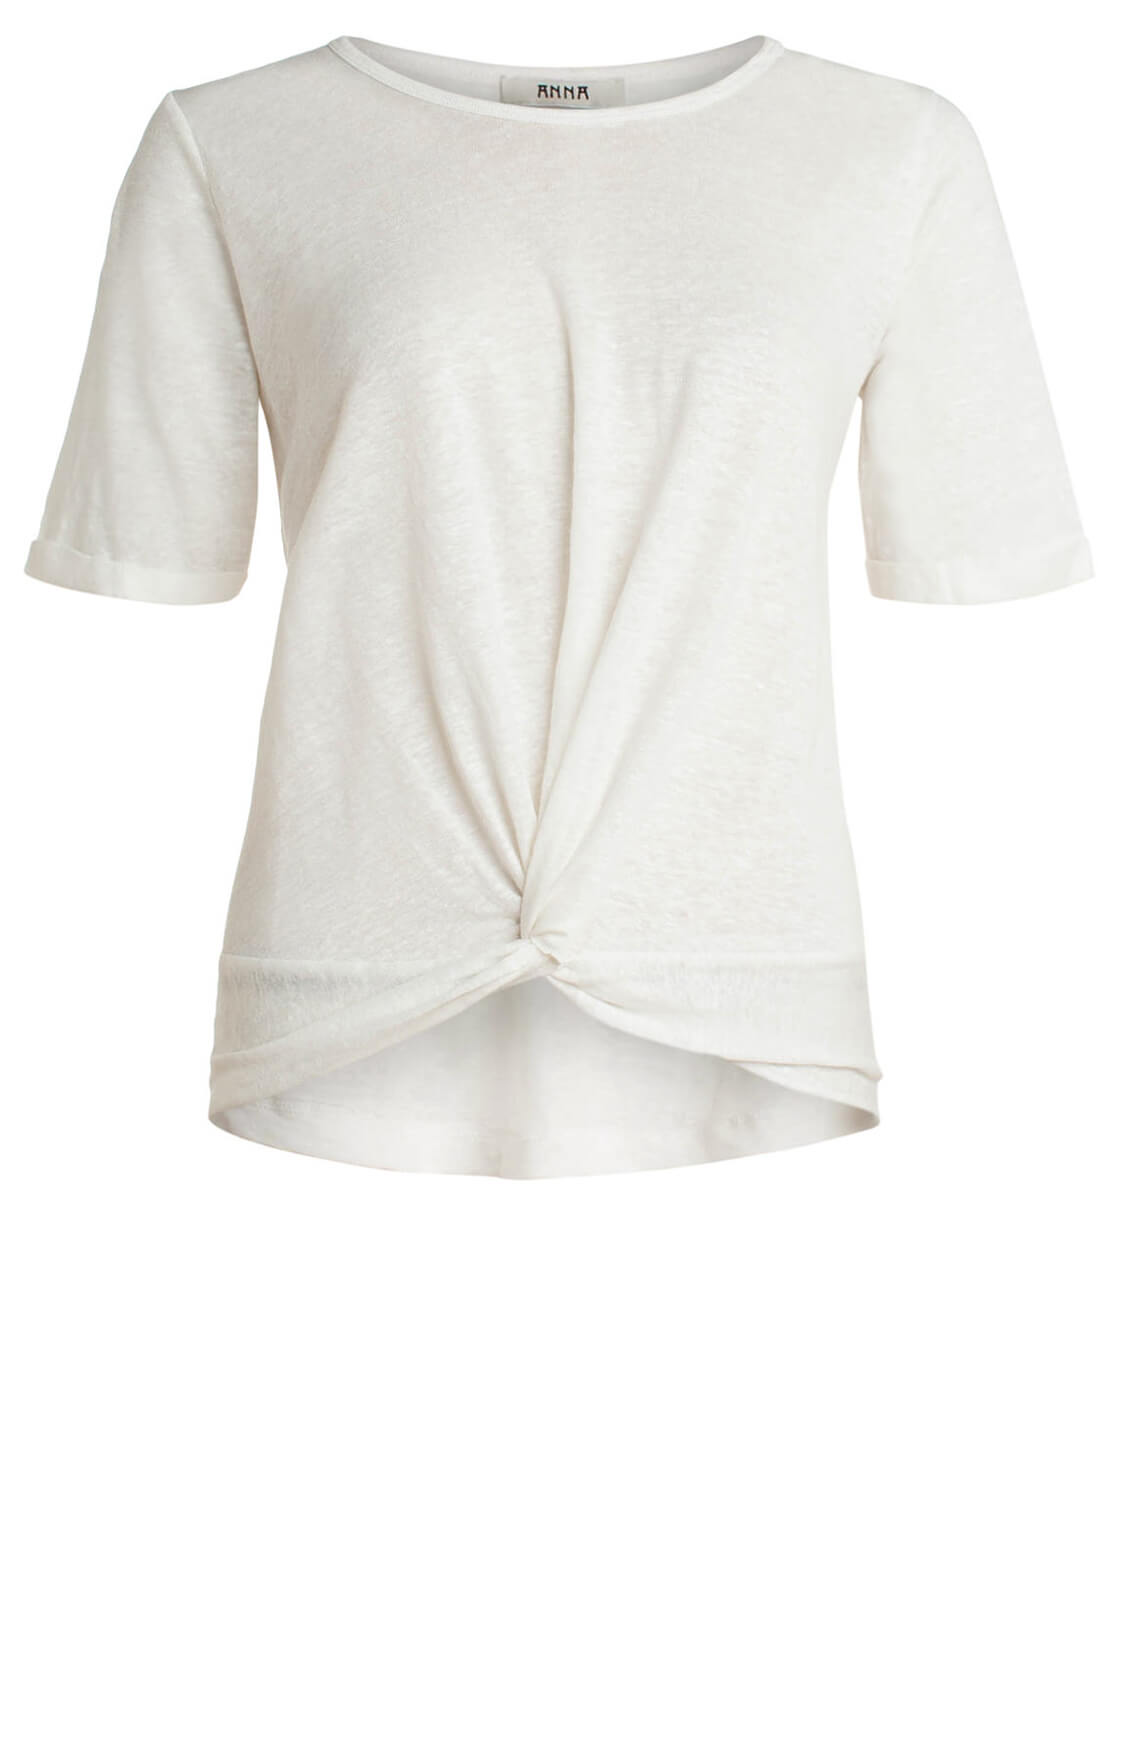 Anna Dames Shirt met knoopdetail wit